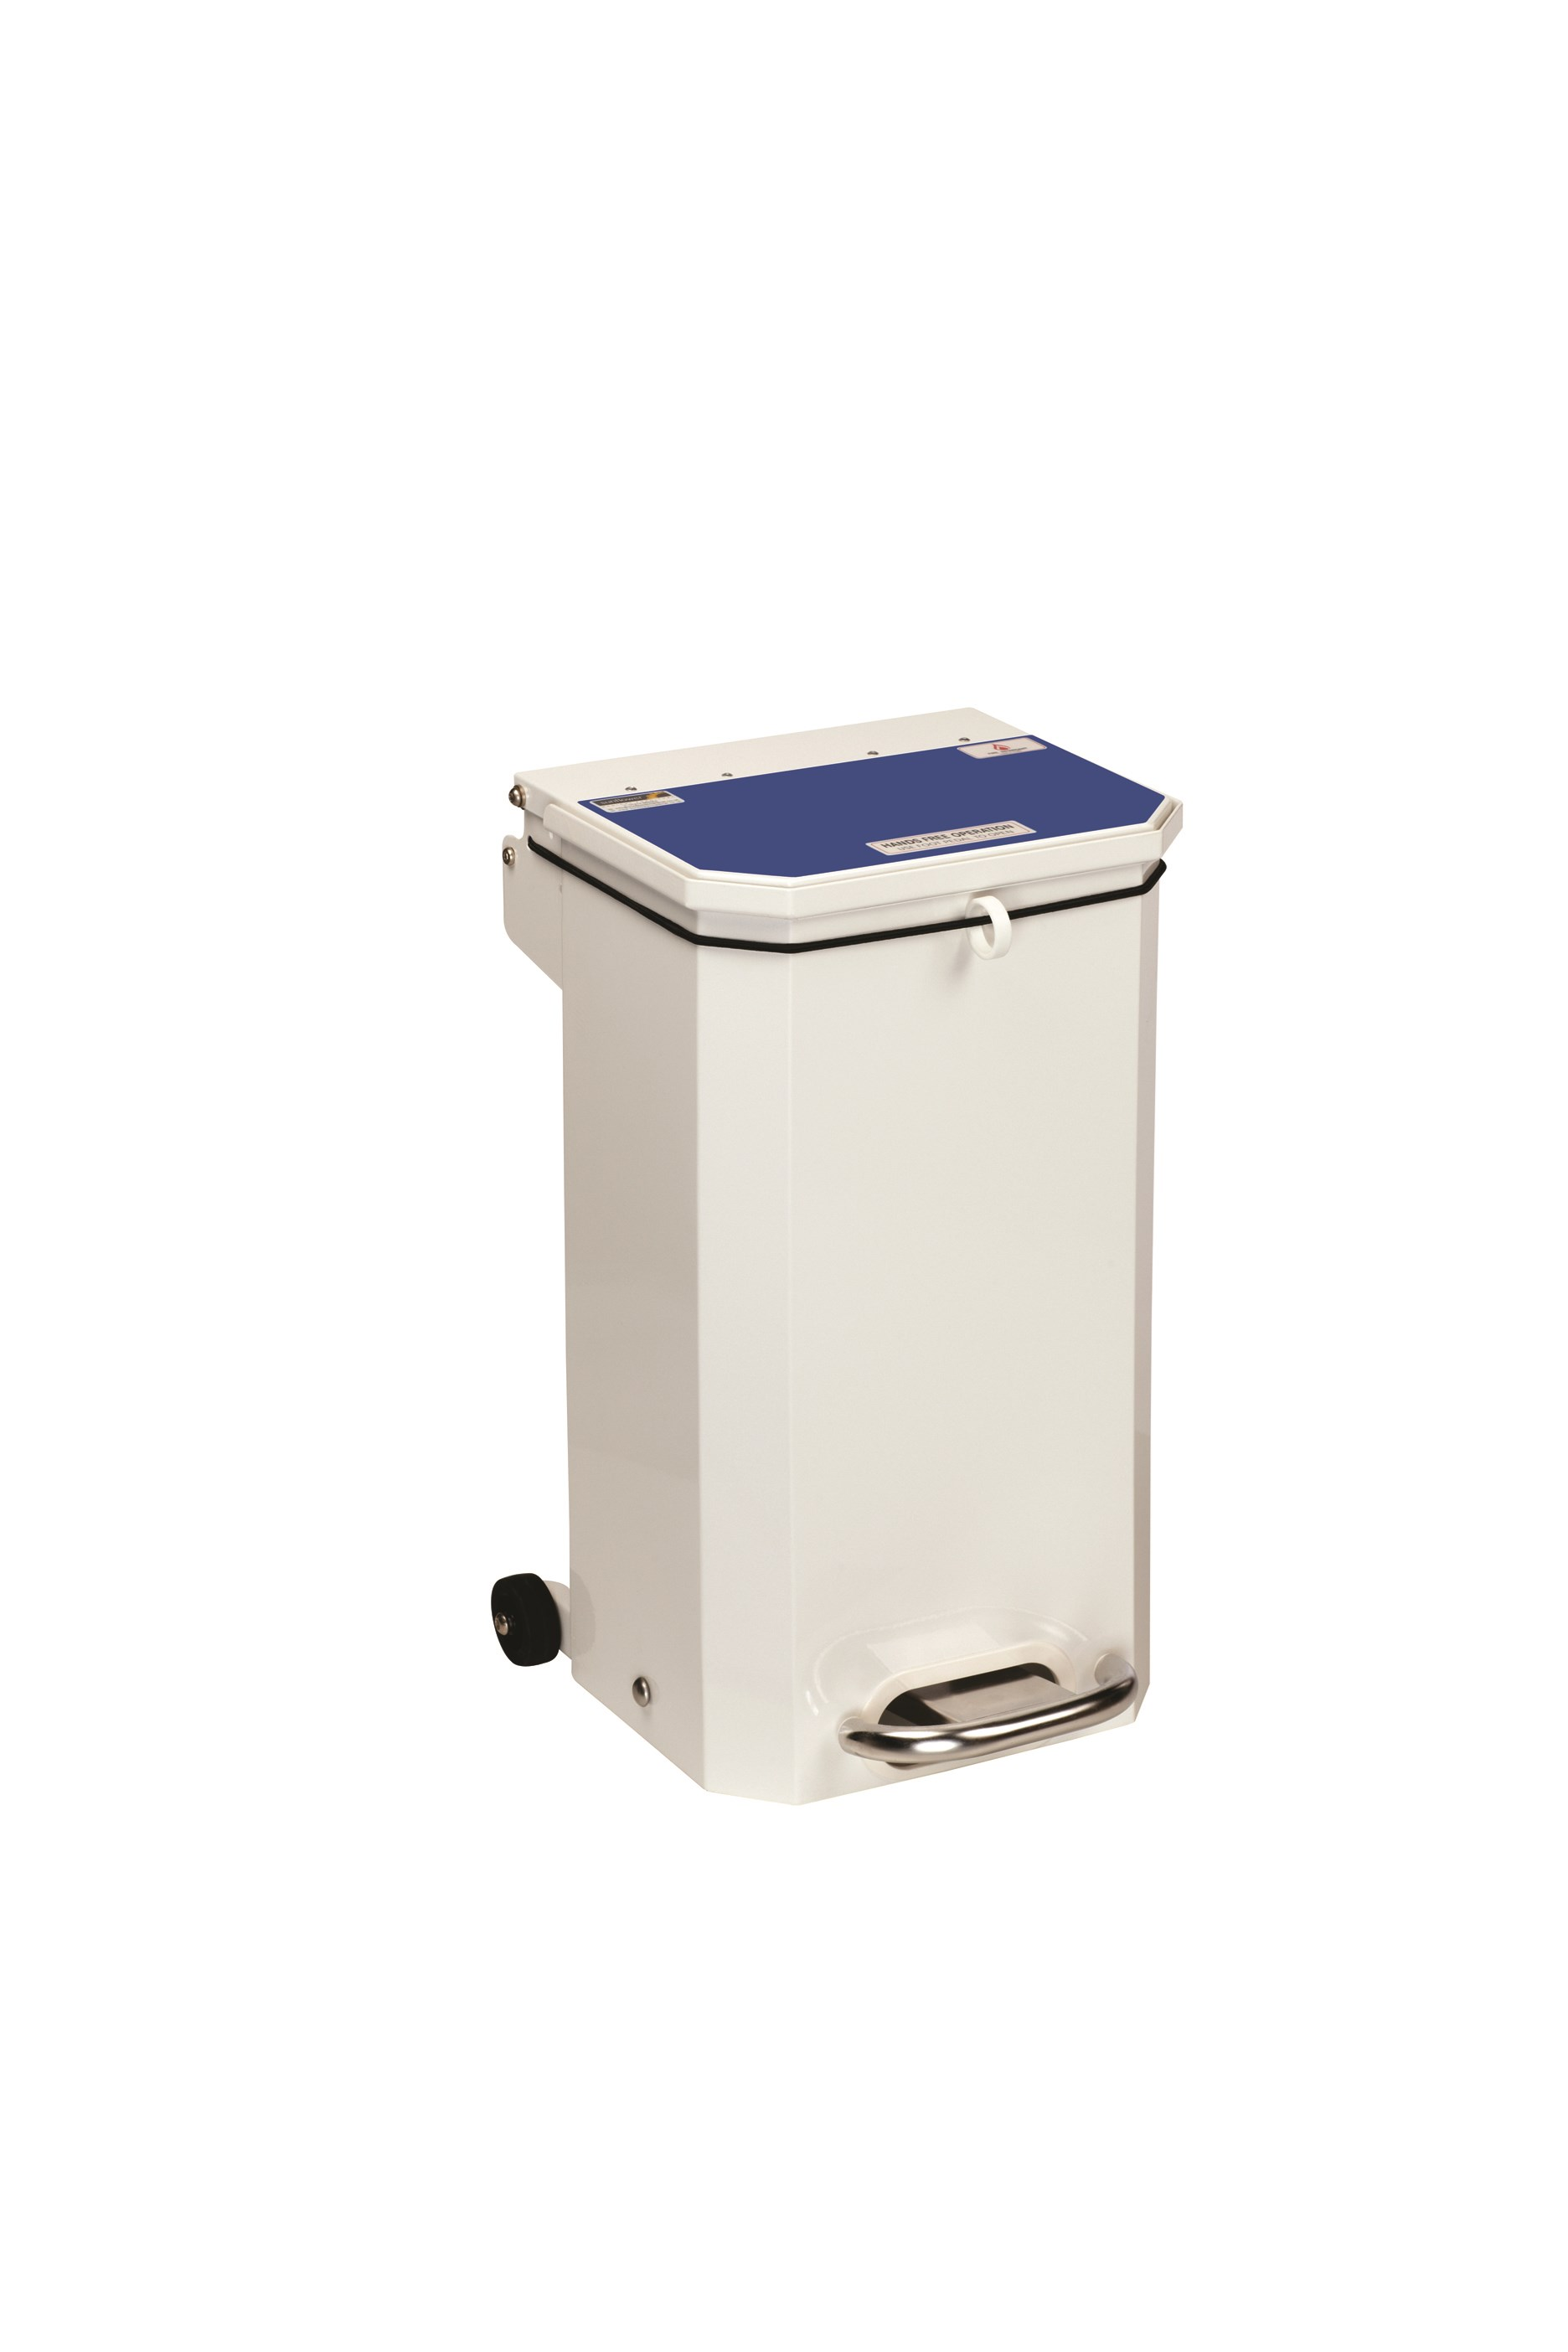 BIN PEDAL 20 LTR WITH BLUE LID USER DEFINED